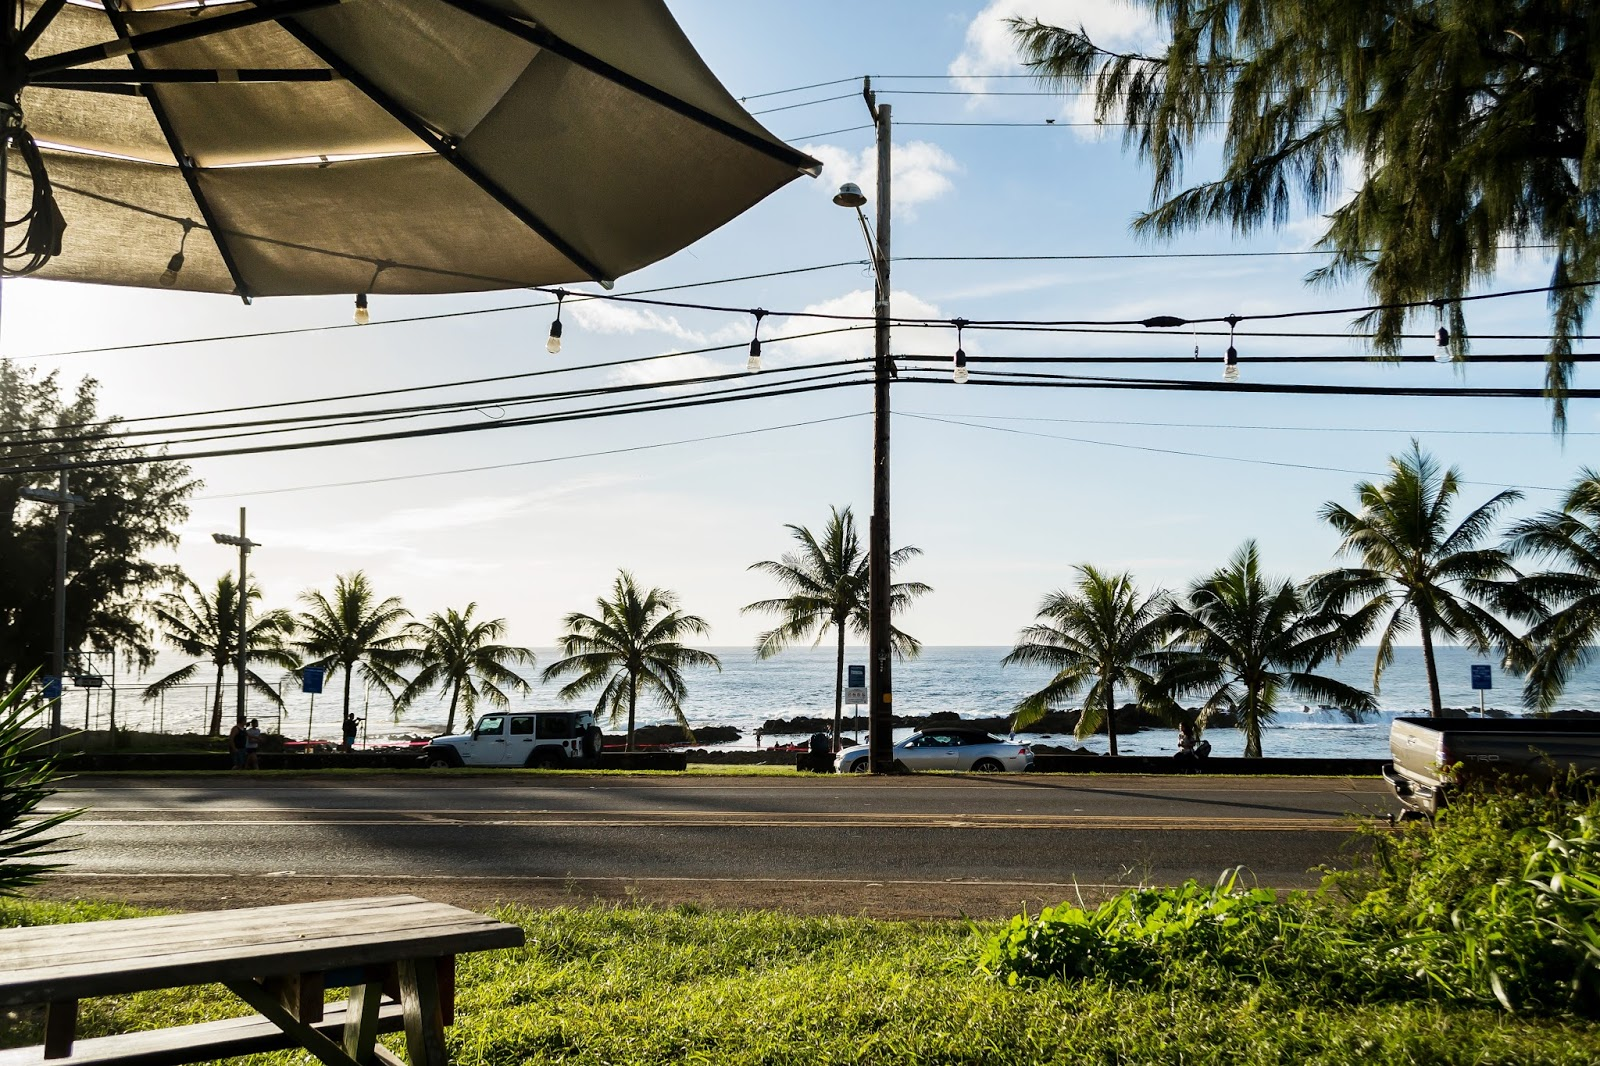 Cafes in North Shore, Oahu